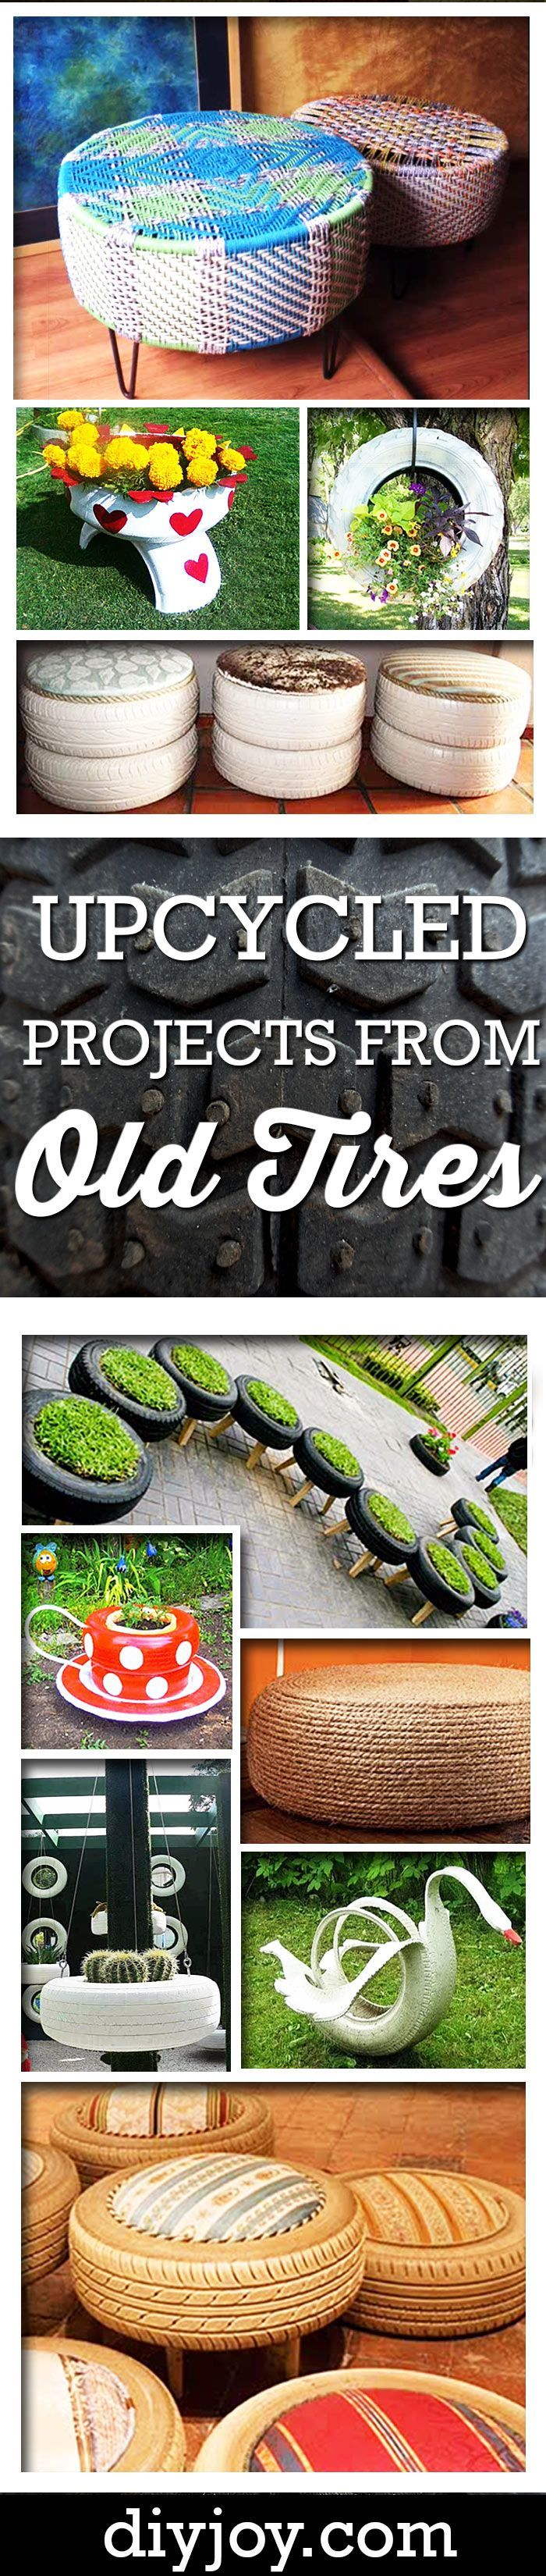 DIY Ideas - upcycling projects made from old tires.  Fun crafts ideas and tutorials for indoor and outdoor garden decor by diy joy